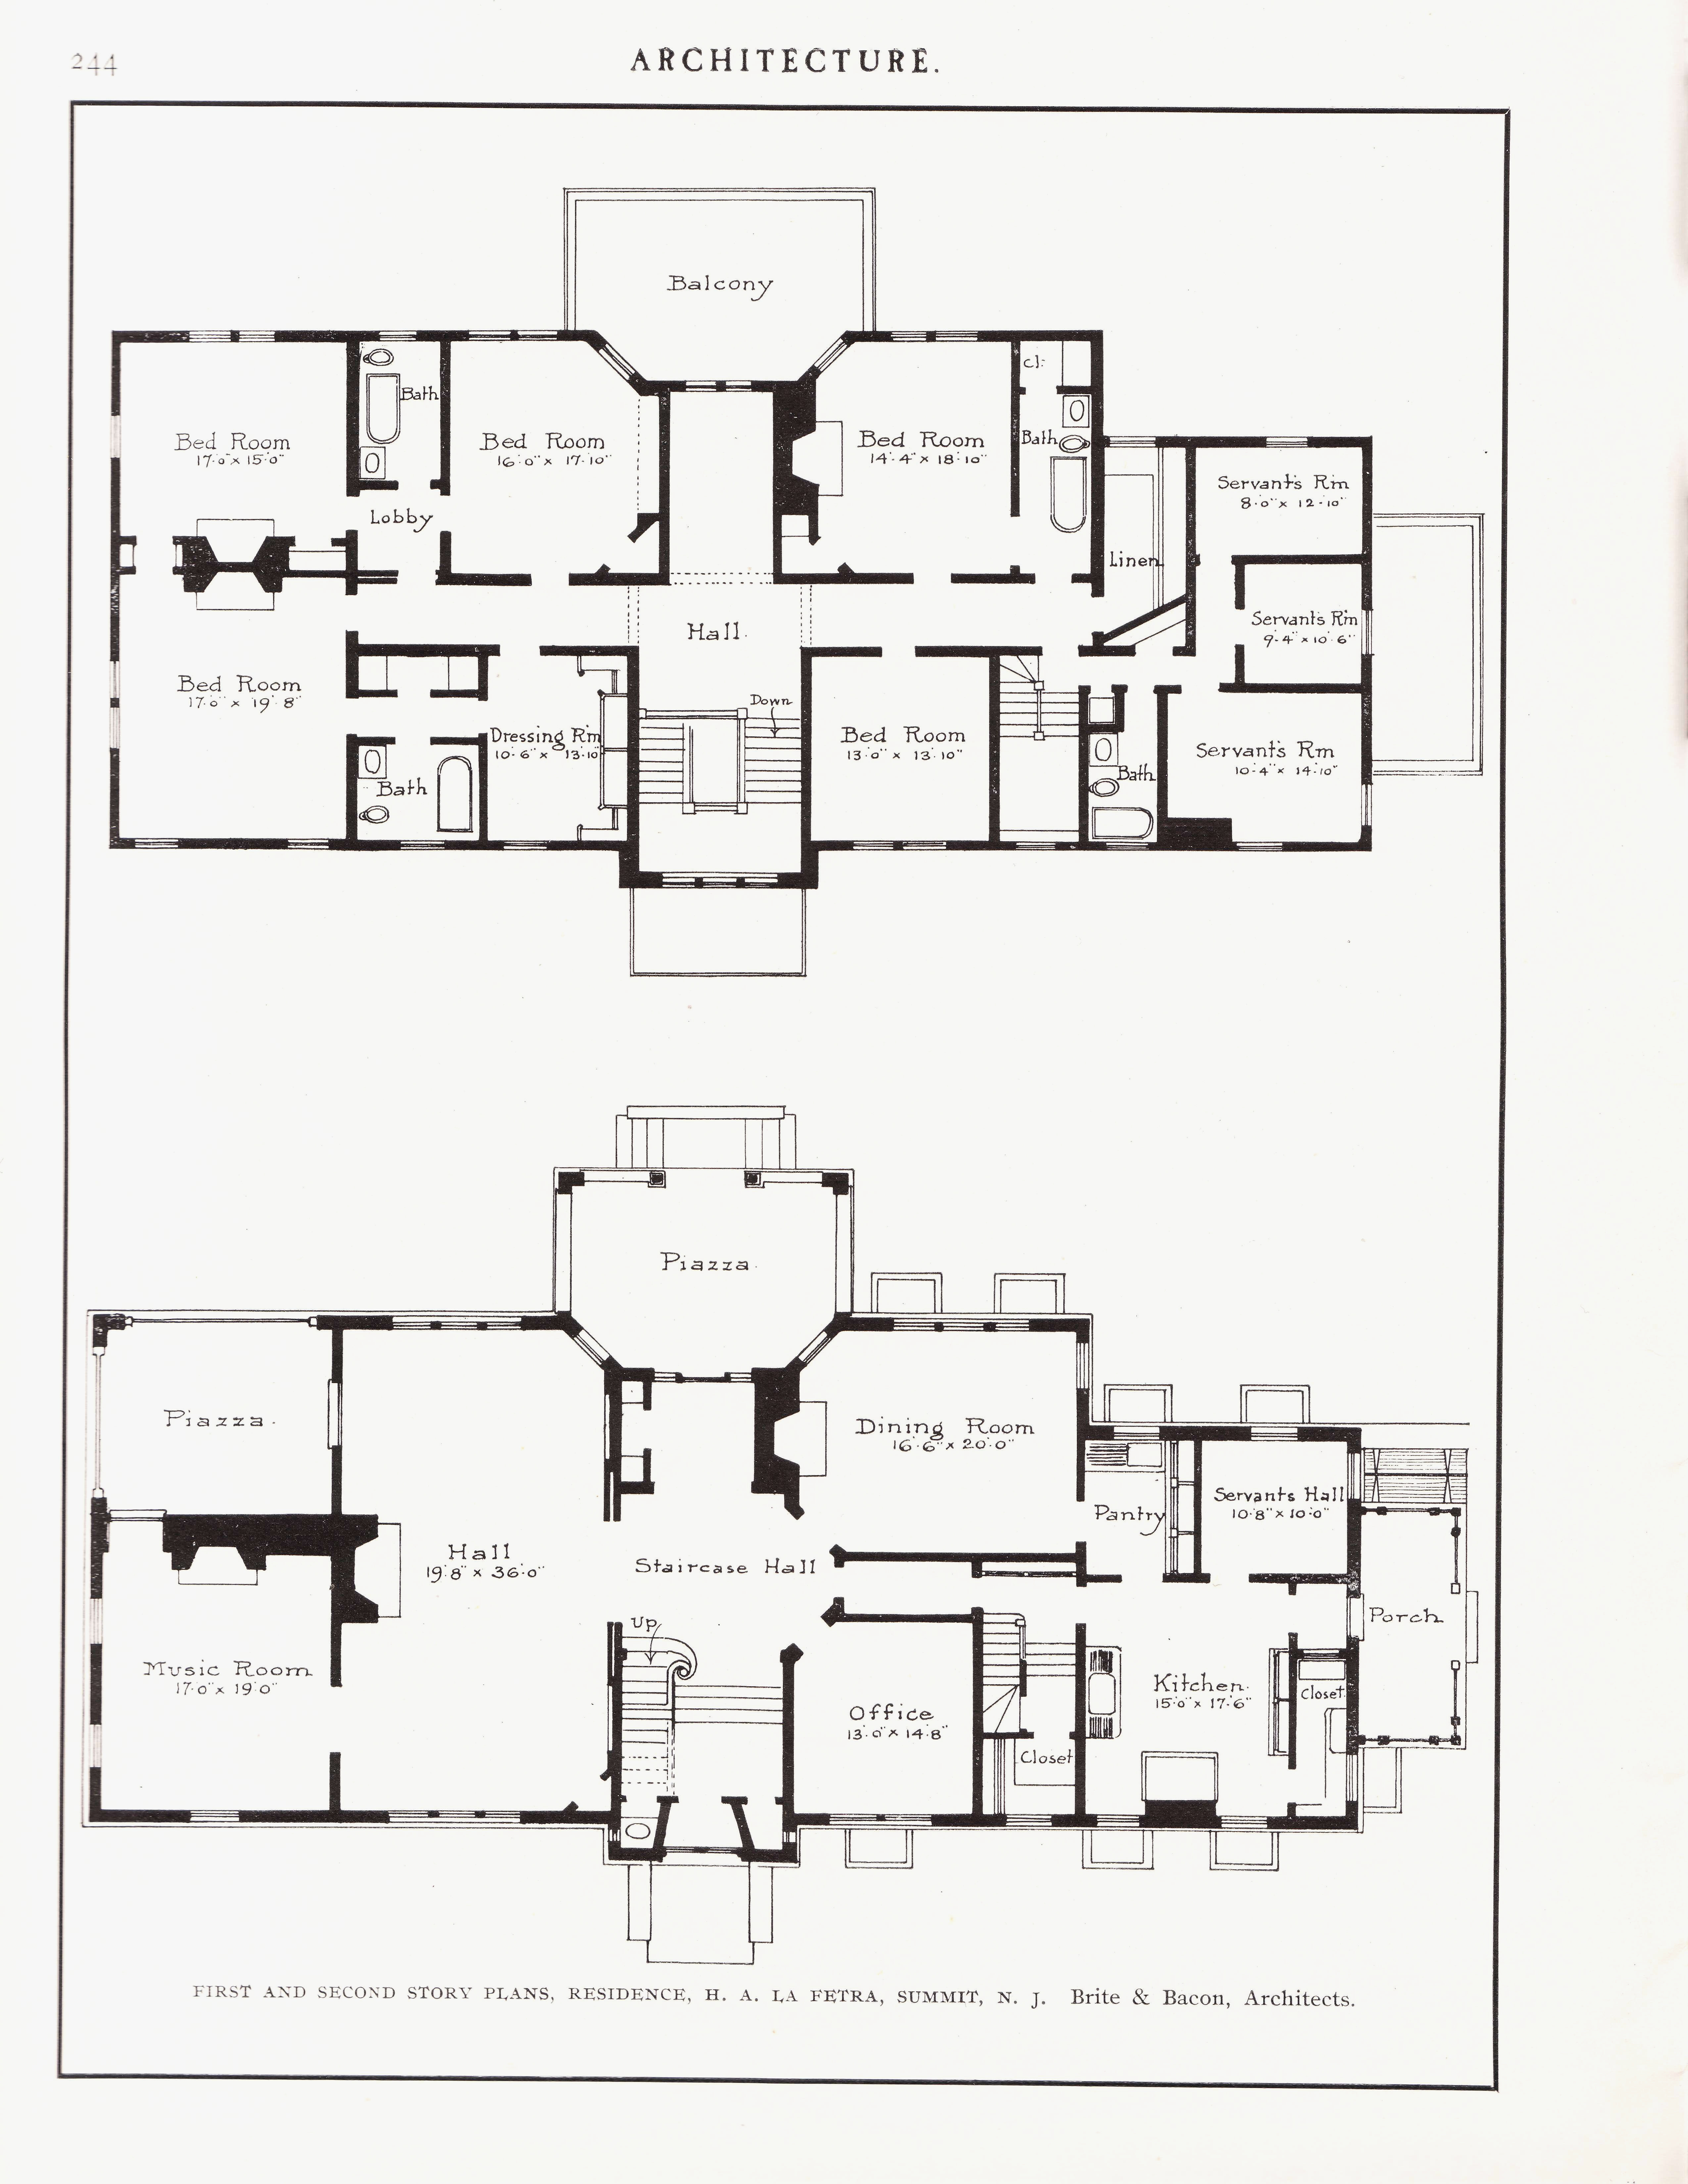 3d house plan drawing software free beautiful 3d house plans software free clean architecture free floor plan maker designs cad of 3d house plan drawing software free downl